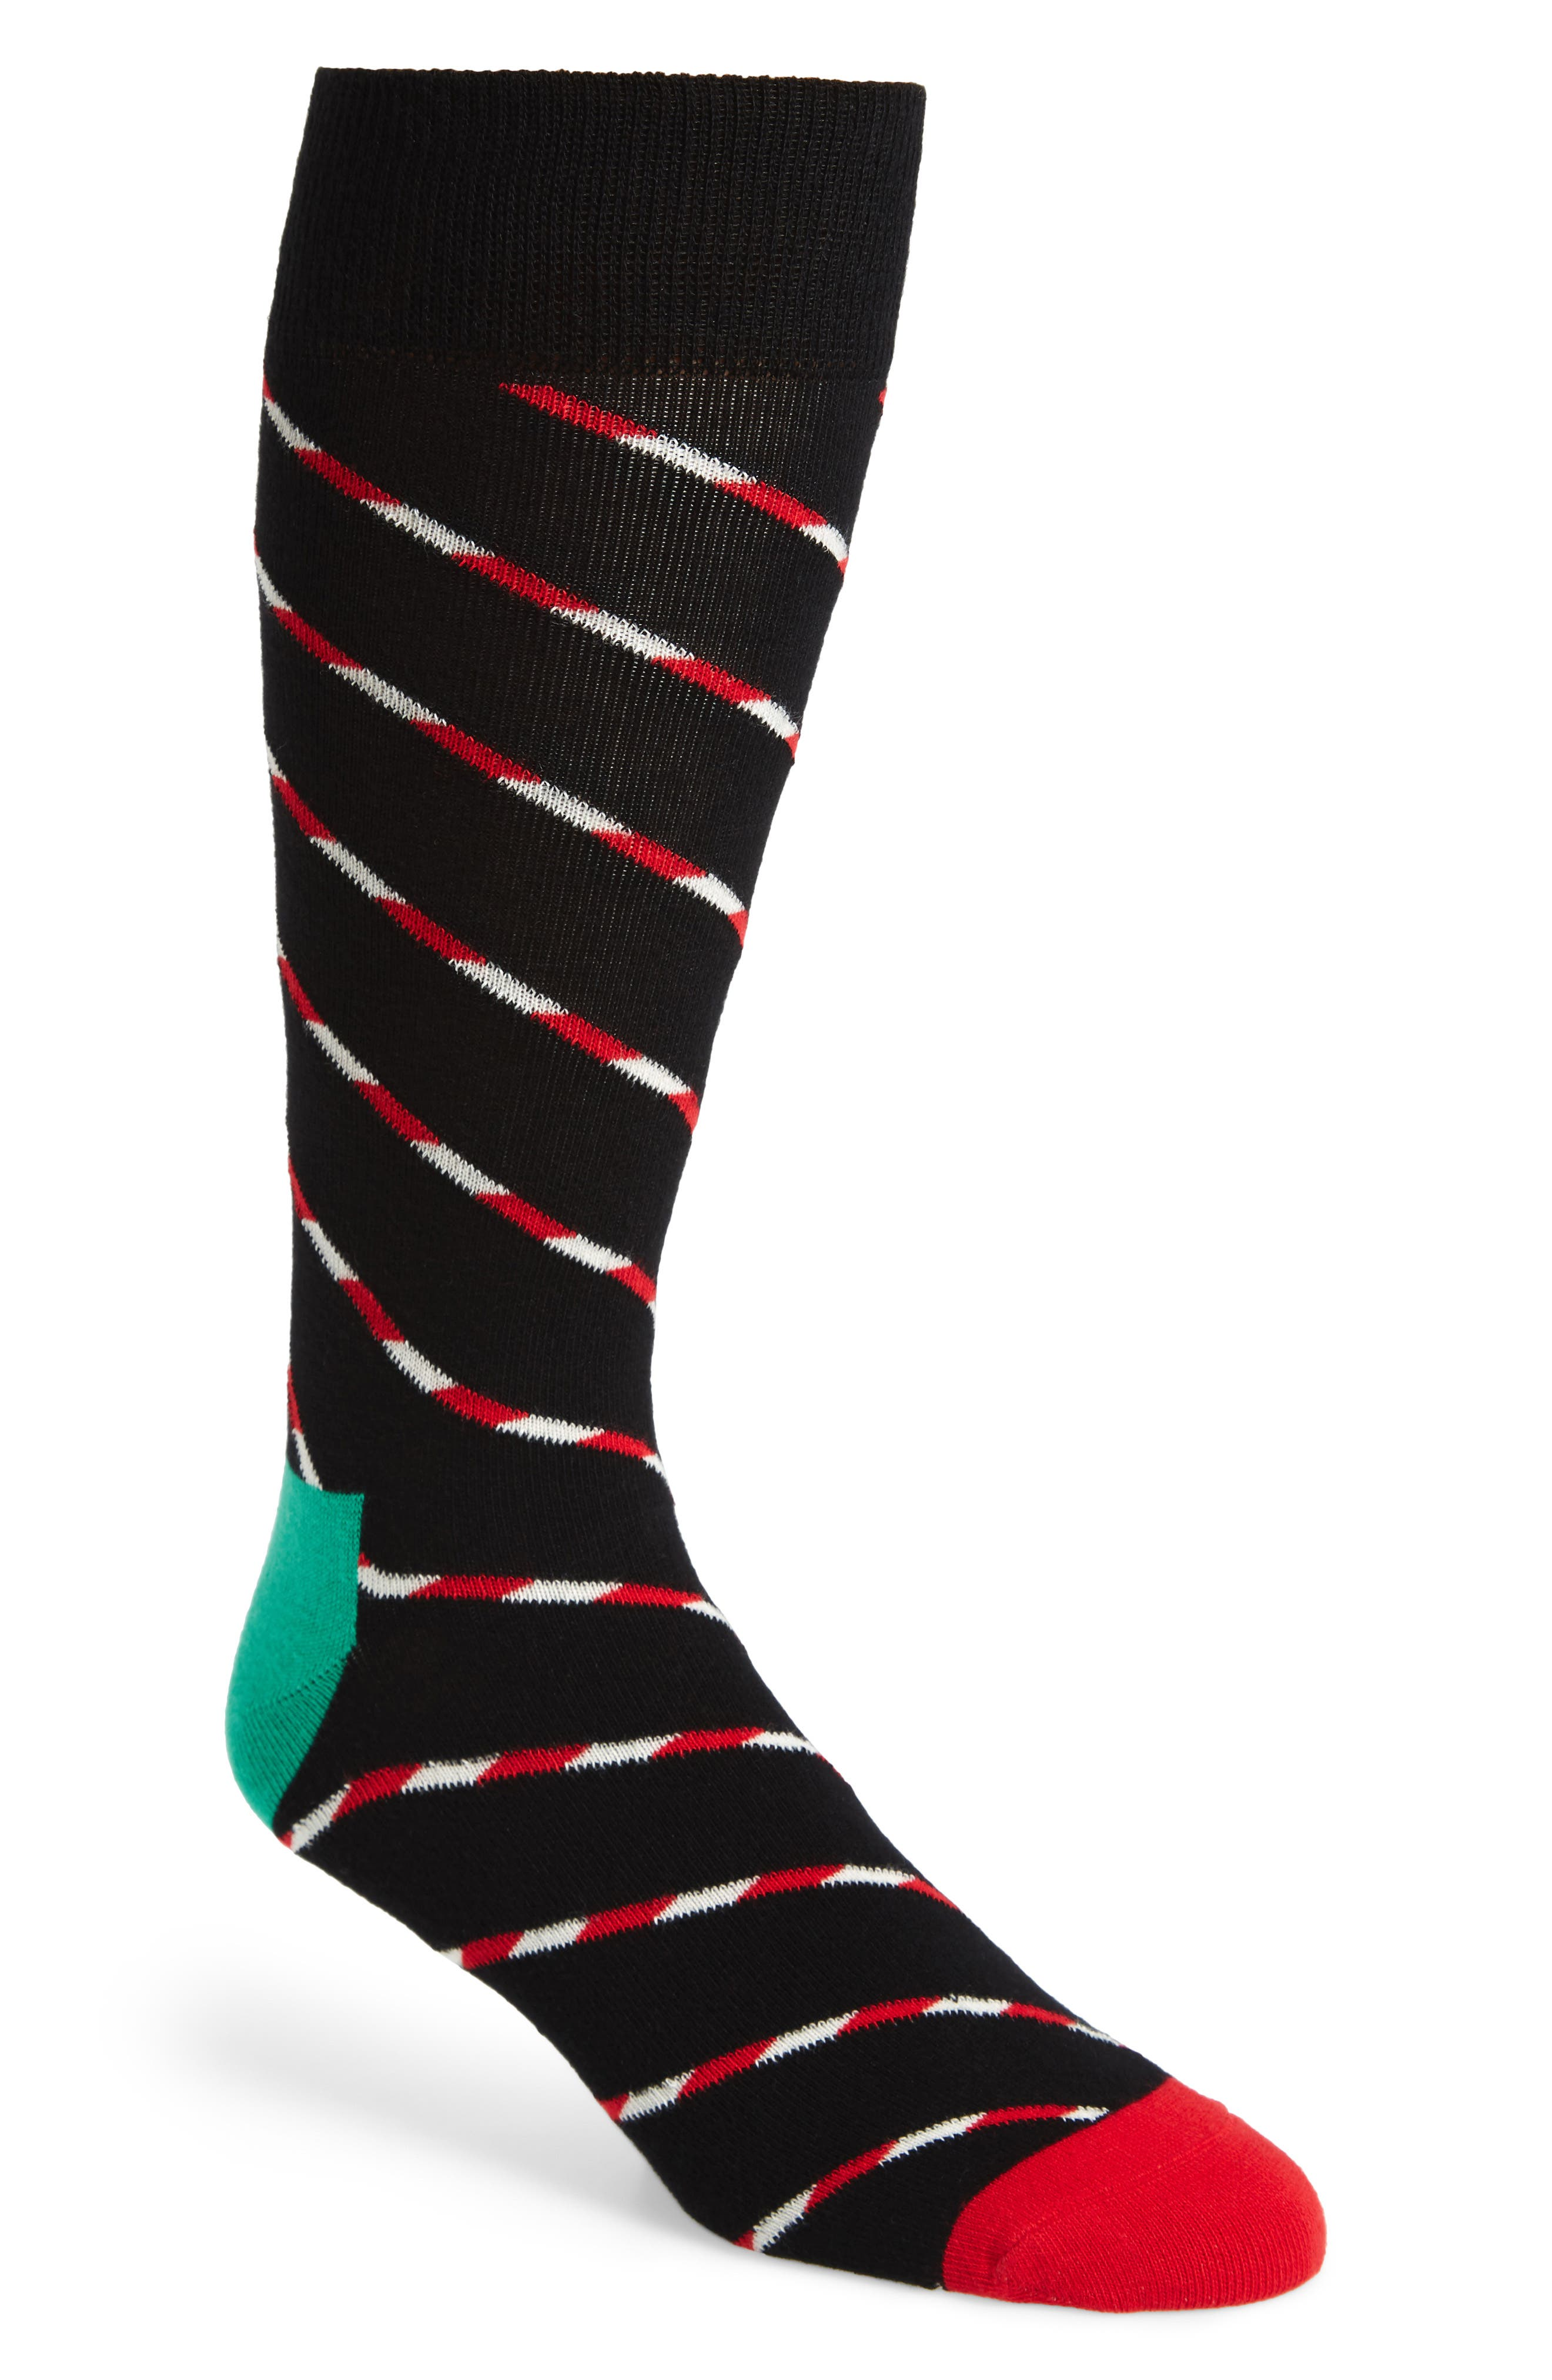 Candy Cane Stripe Socks,                             Main thumbnail 1, color,